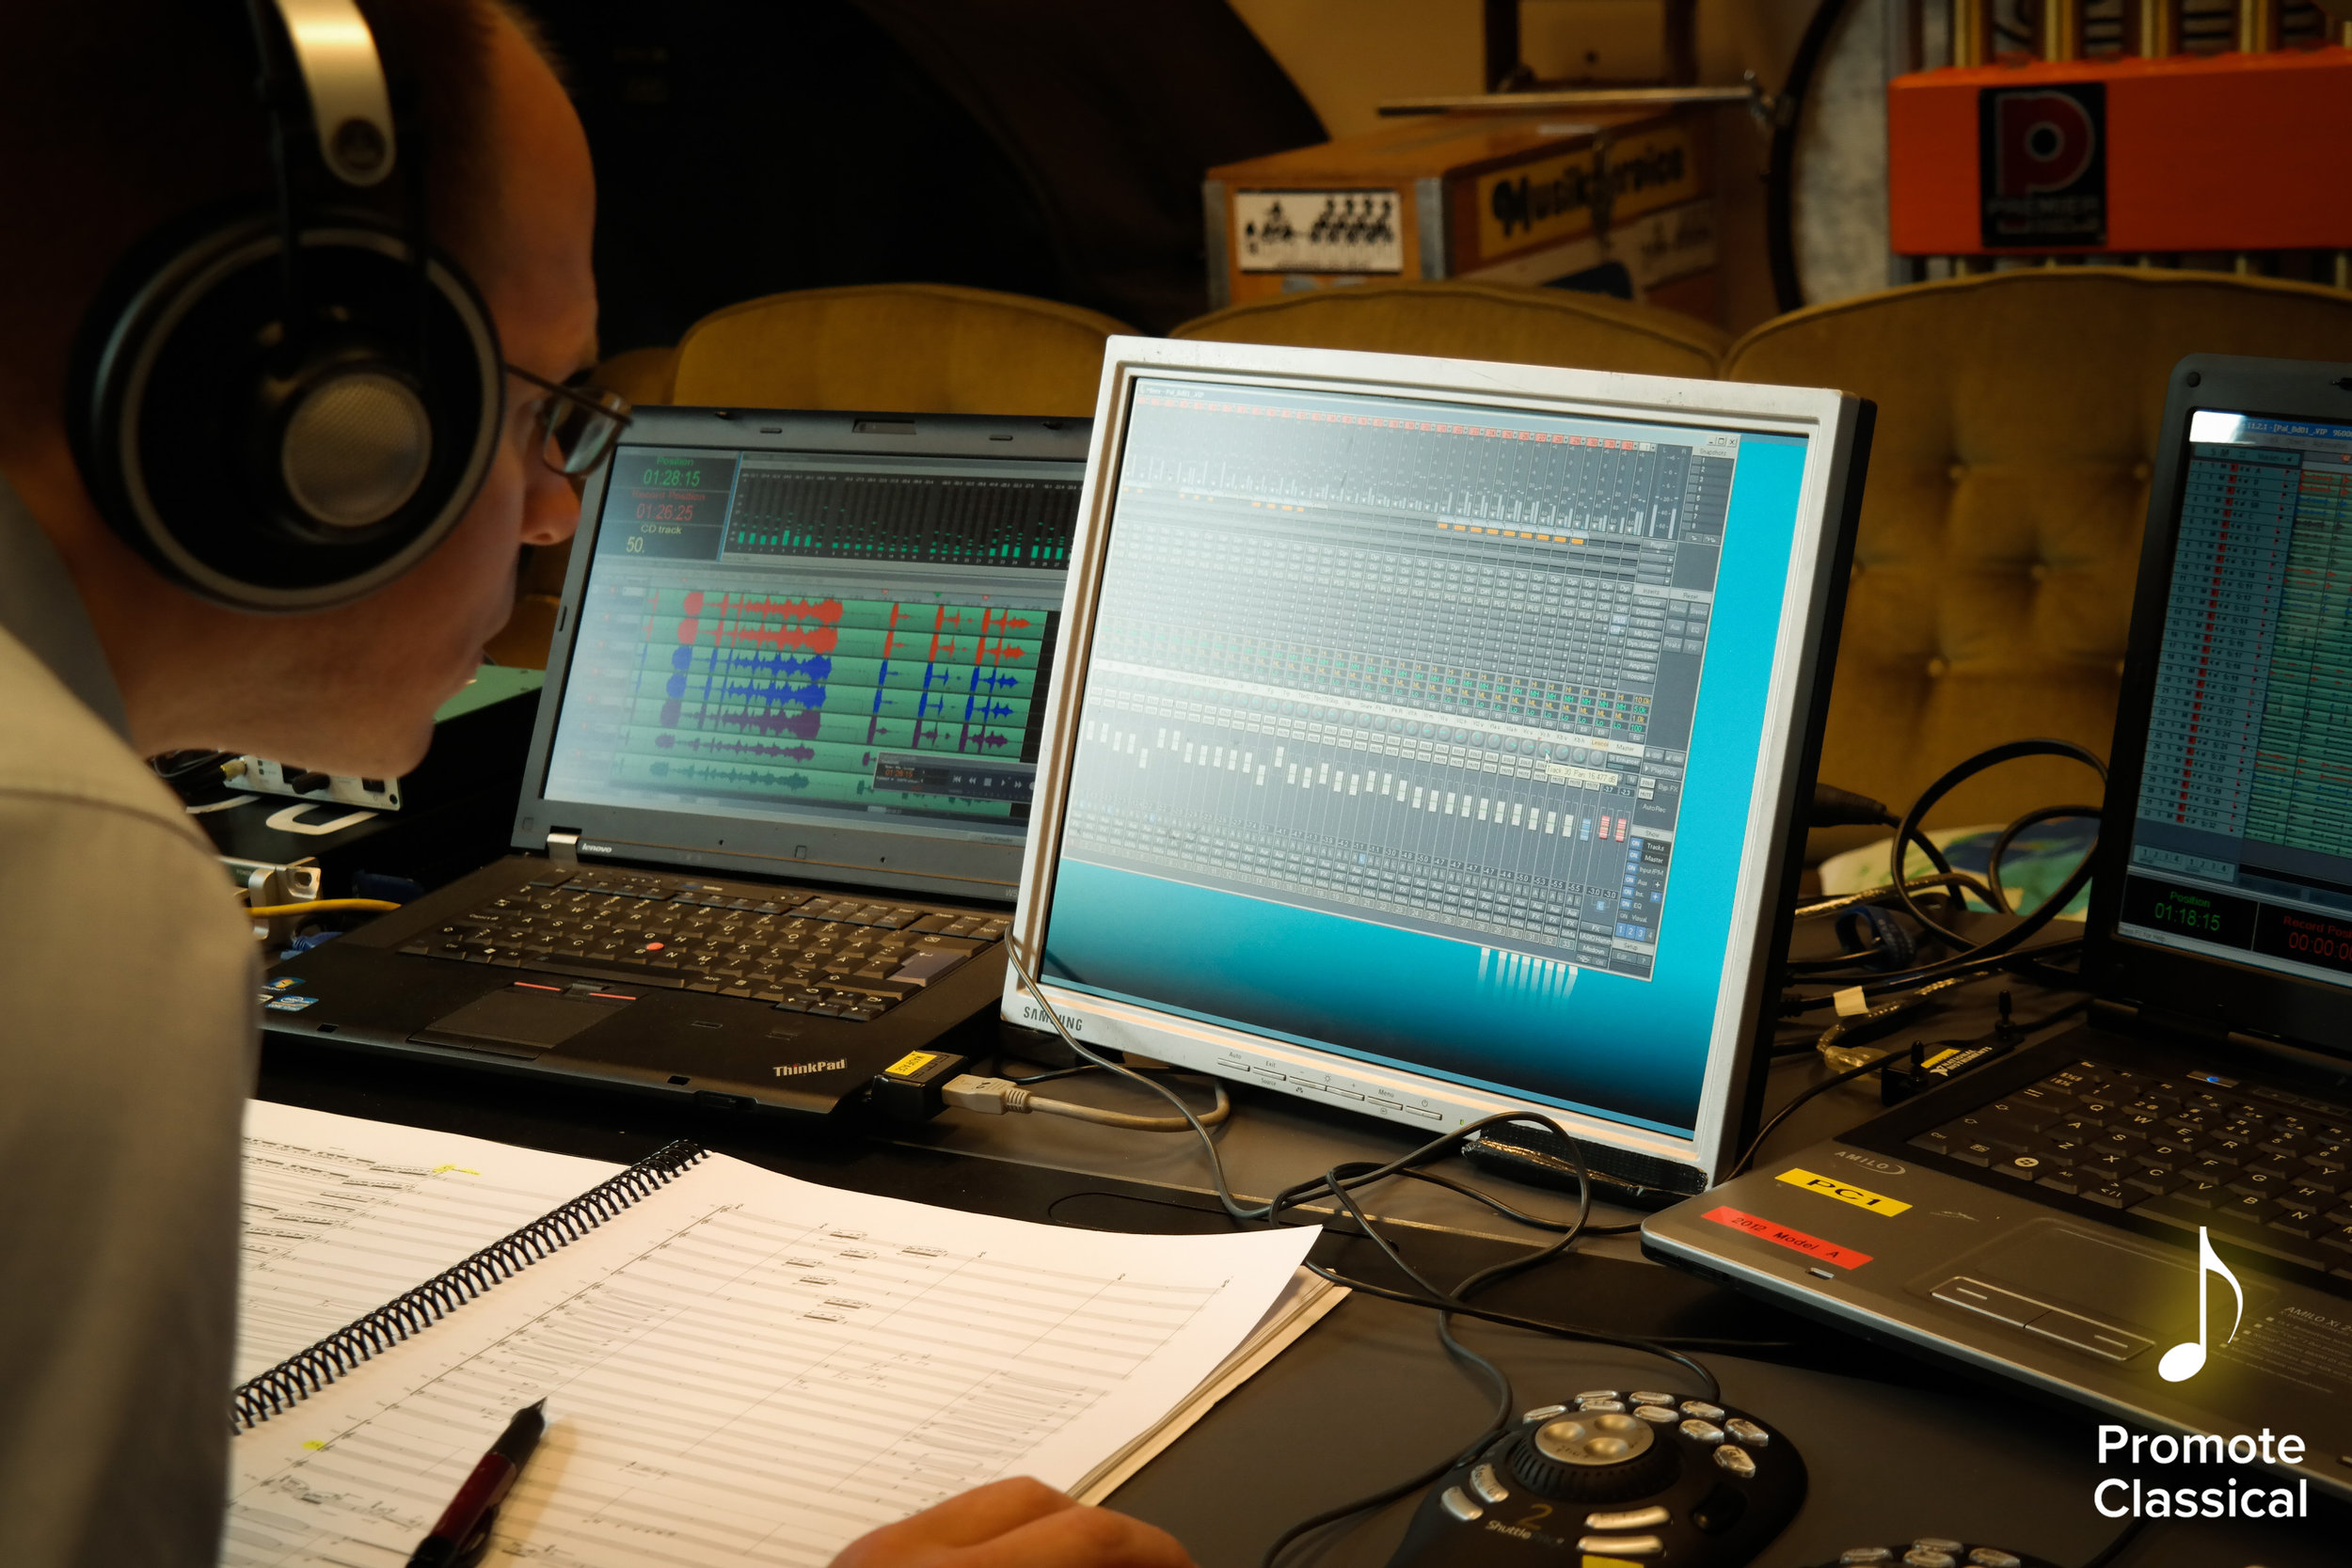 BIS Records Engineer Andreas editing the recording of one of Vito's compositions during a recording session in Gävle, Sweden.